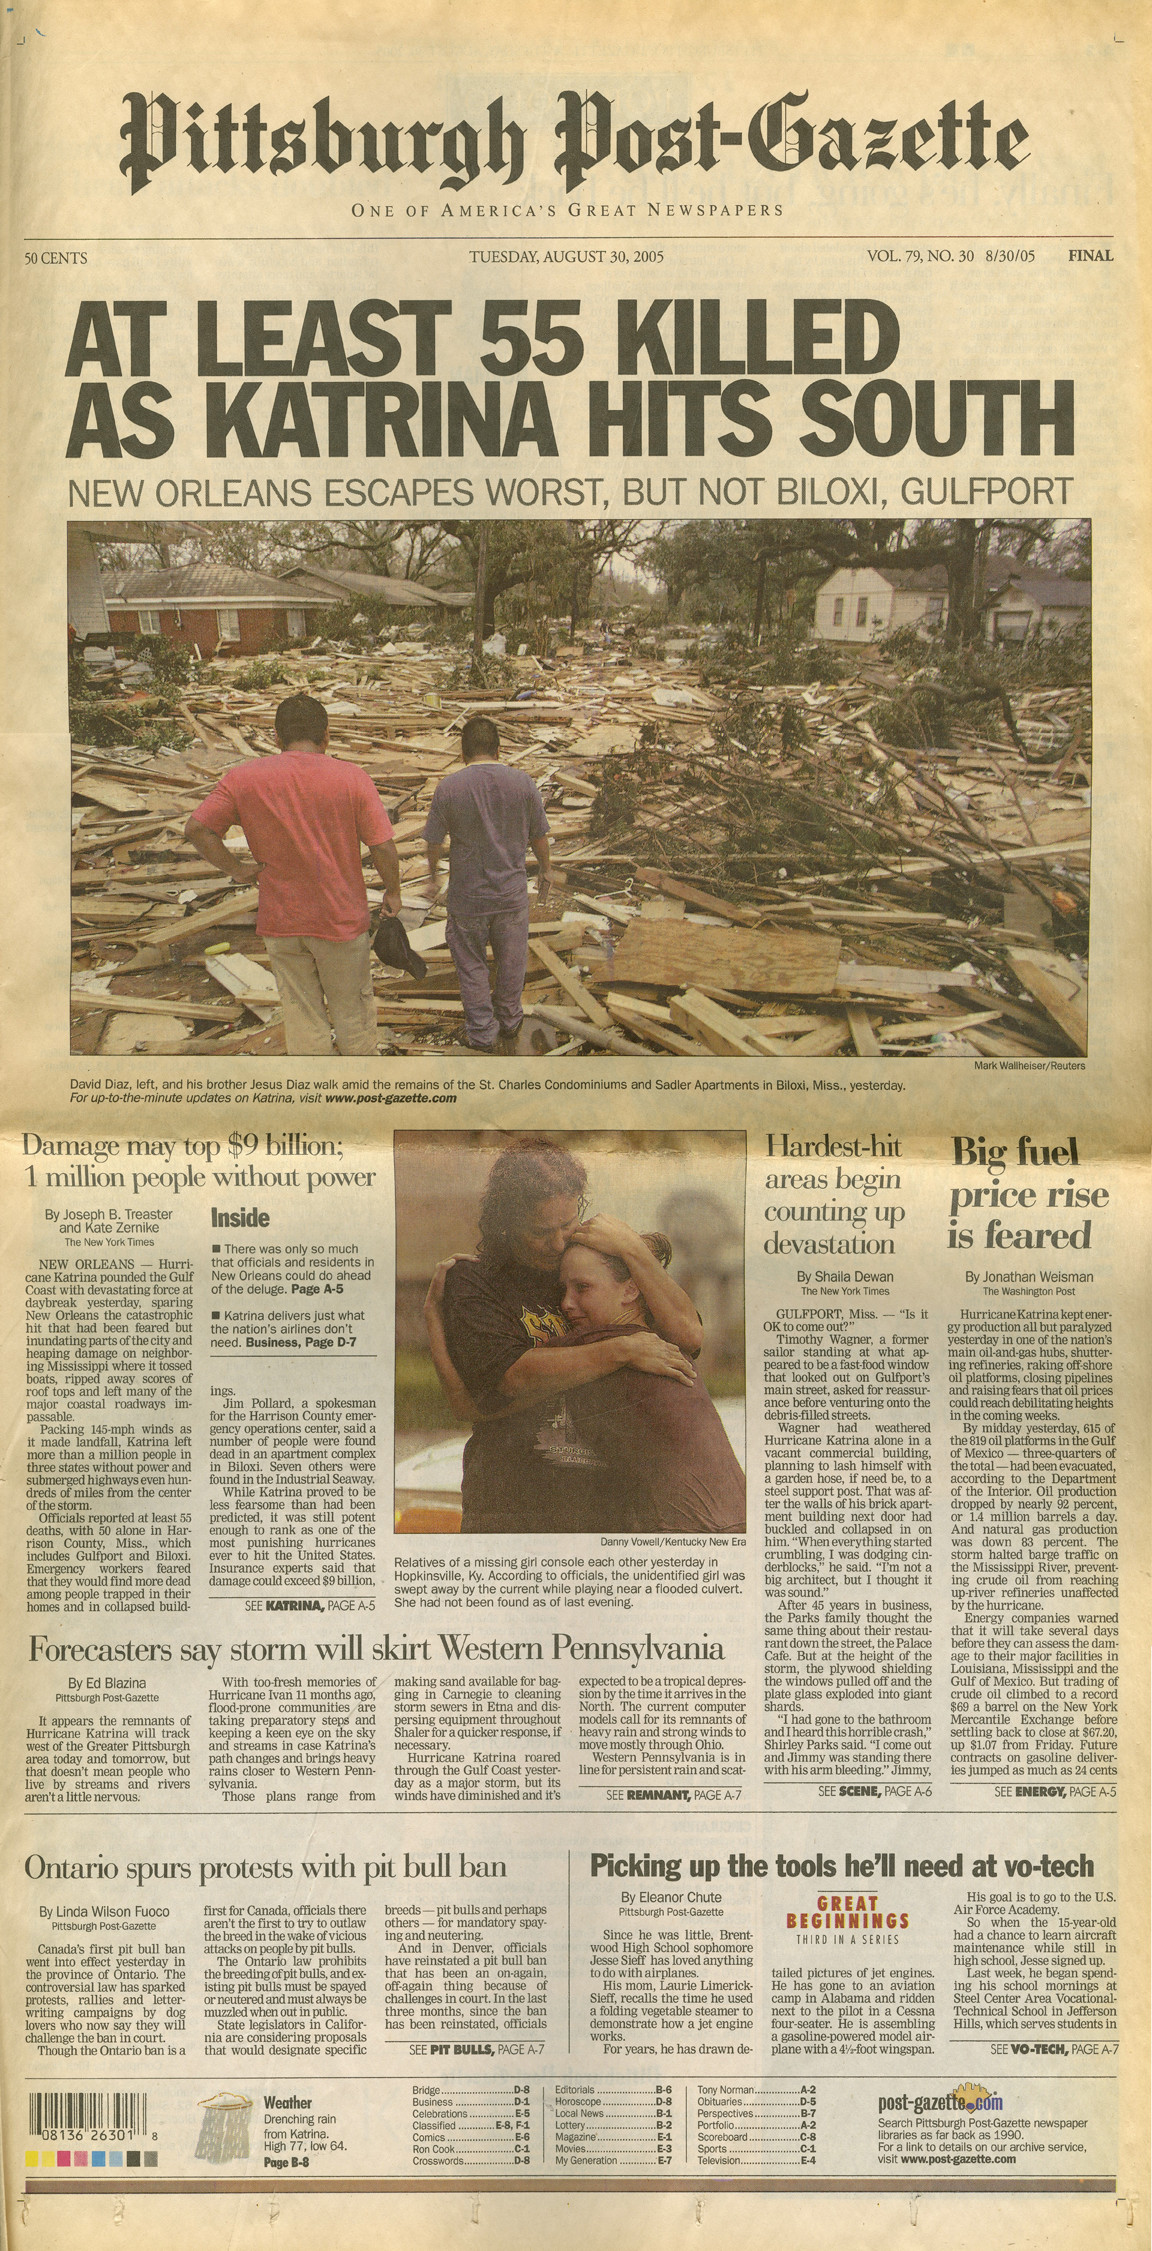 The Aug. 30, 2005, front page of the Post-Gazette.